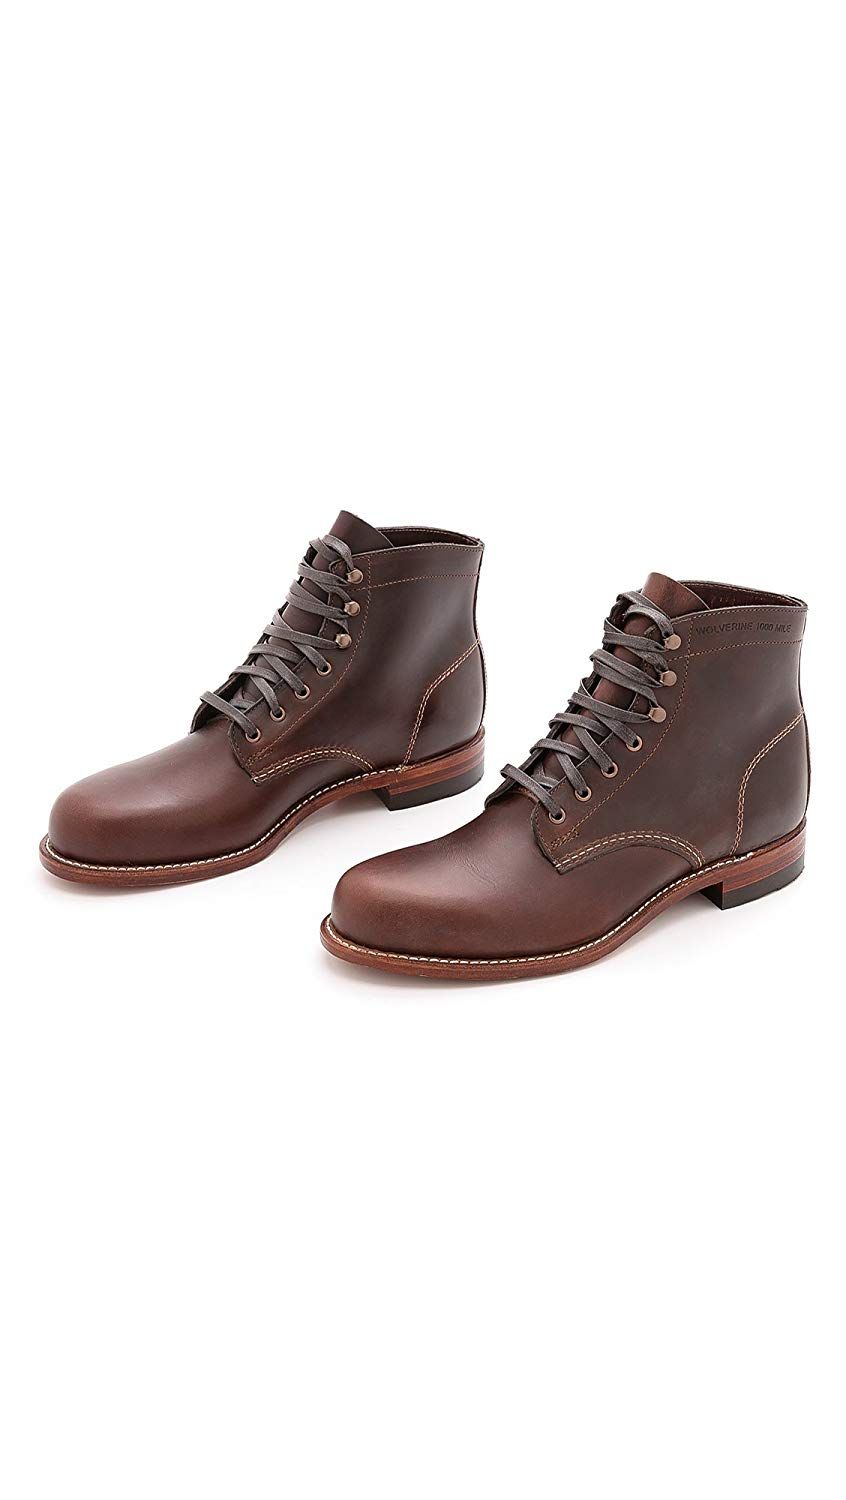 Wolverine-1000-Mile-Men-039-s-Leather-Boots-Cordovan-8-Black-Brown-Rust thumbnail 7